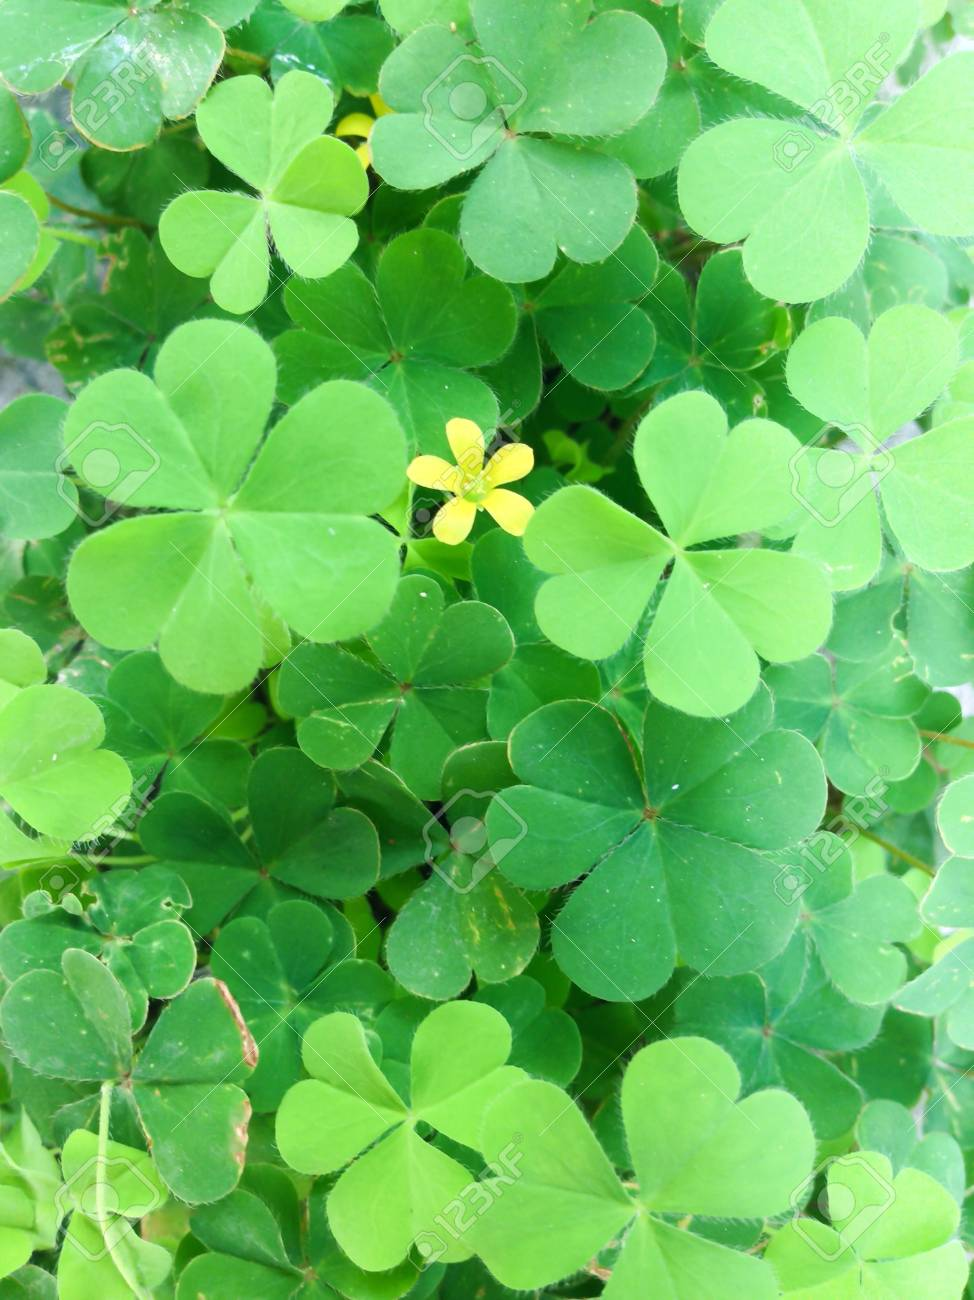 Close Up Of Clover With Yellow Flower Stock Photo Picture And